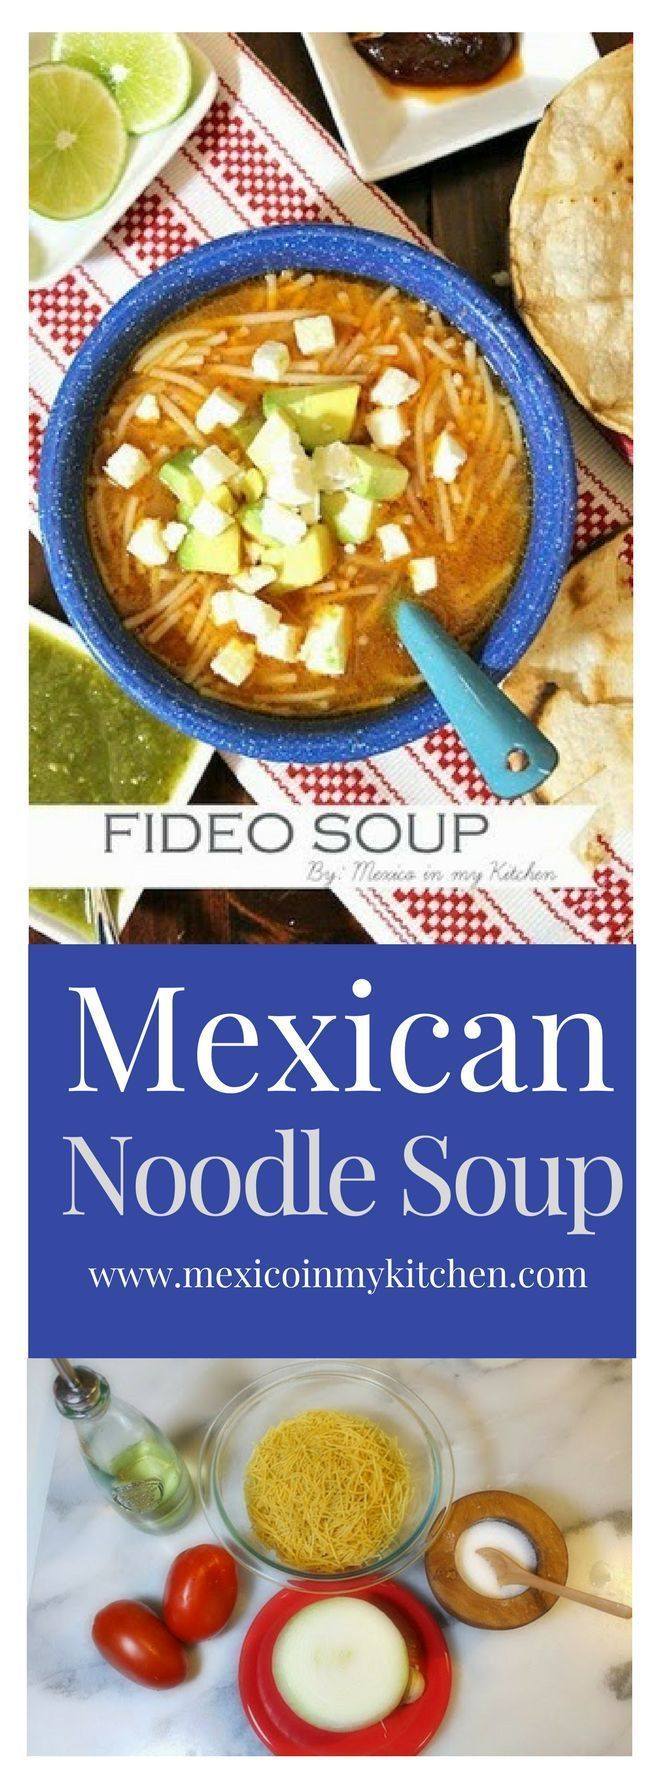 662 mejores imgenes de mexican food en pinterest mexicanos fideo soup is one of the most traditional soup recipes in mexico and is usually forumfinder Image collections